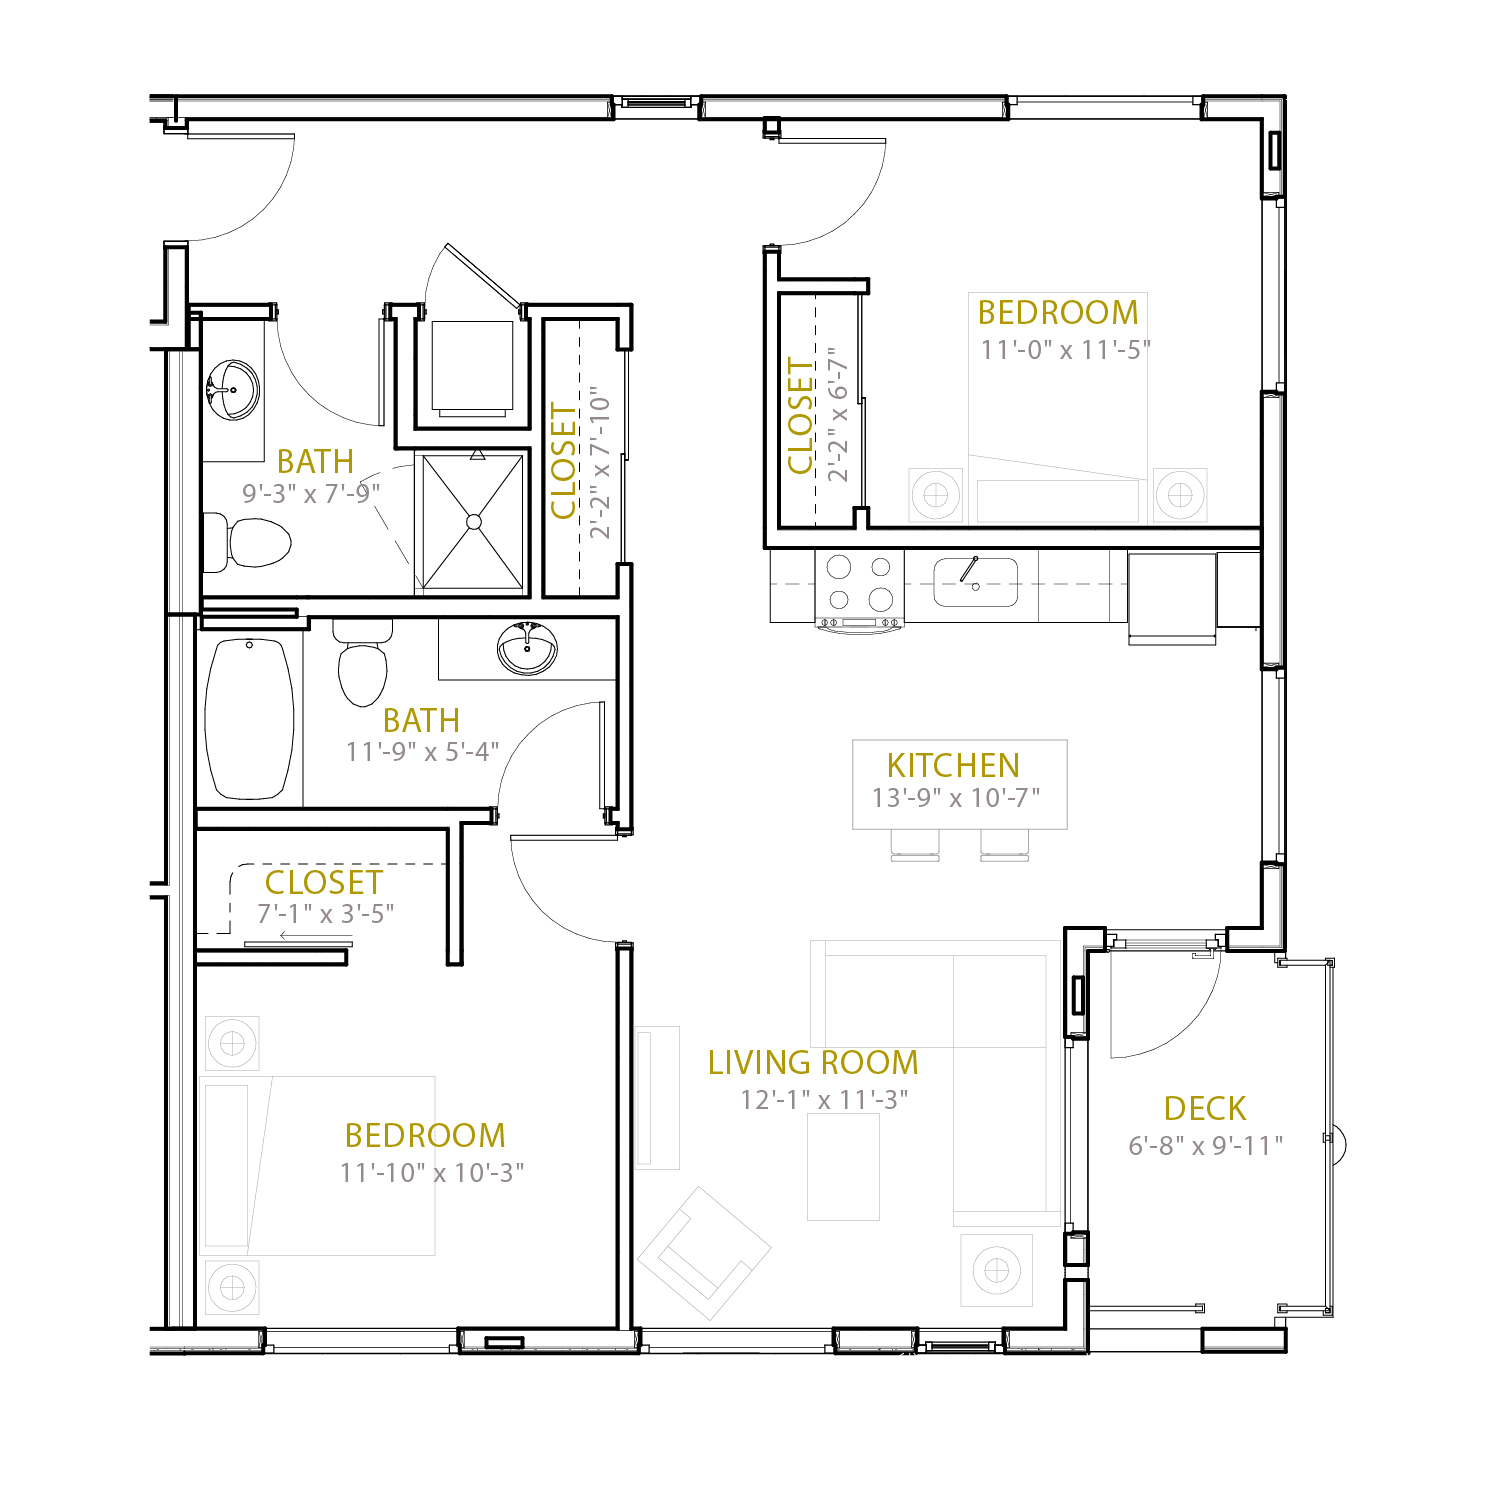 C Nine floor plan diagram. Two bedrooms, two bathrooms, an open kitchen and living area, and a deck.